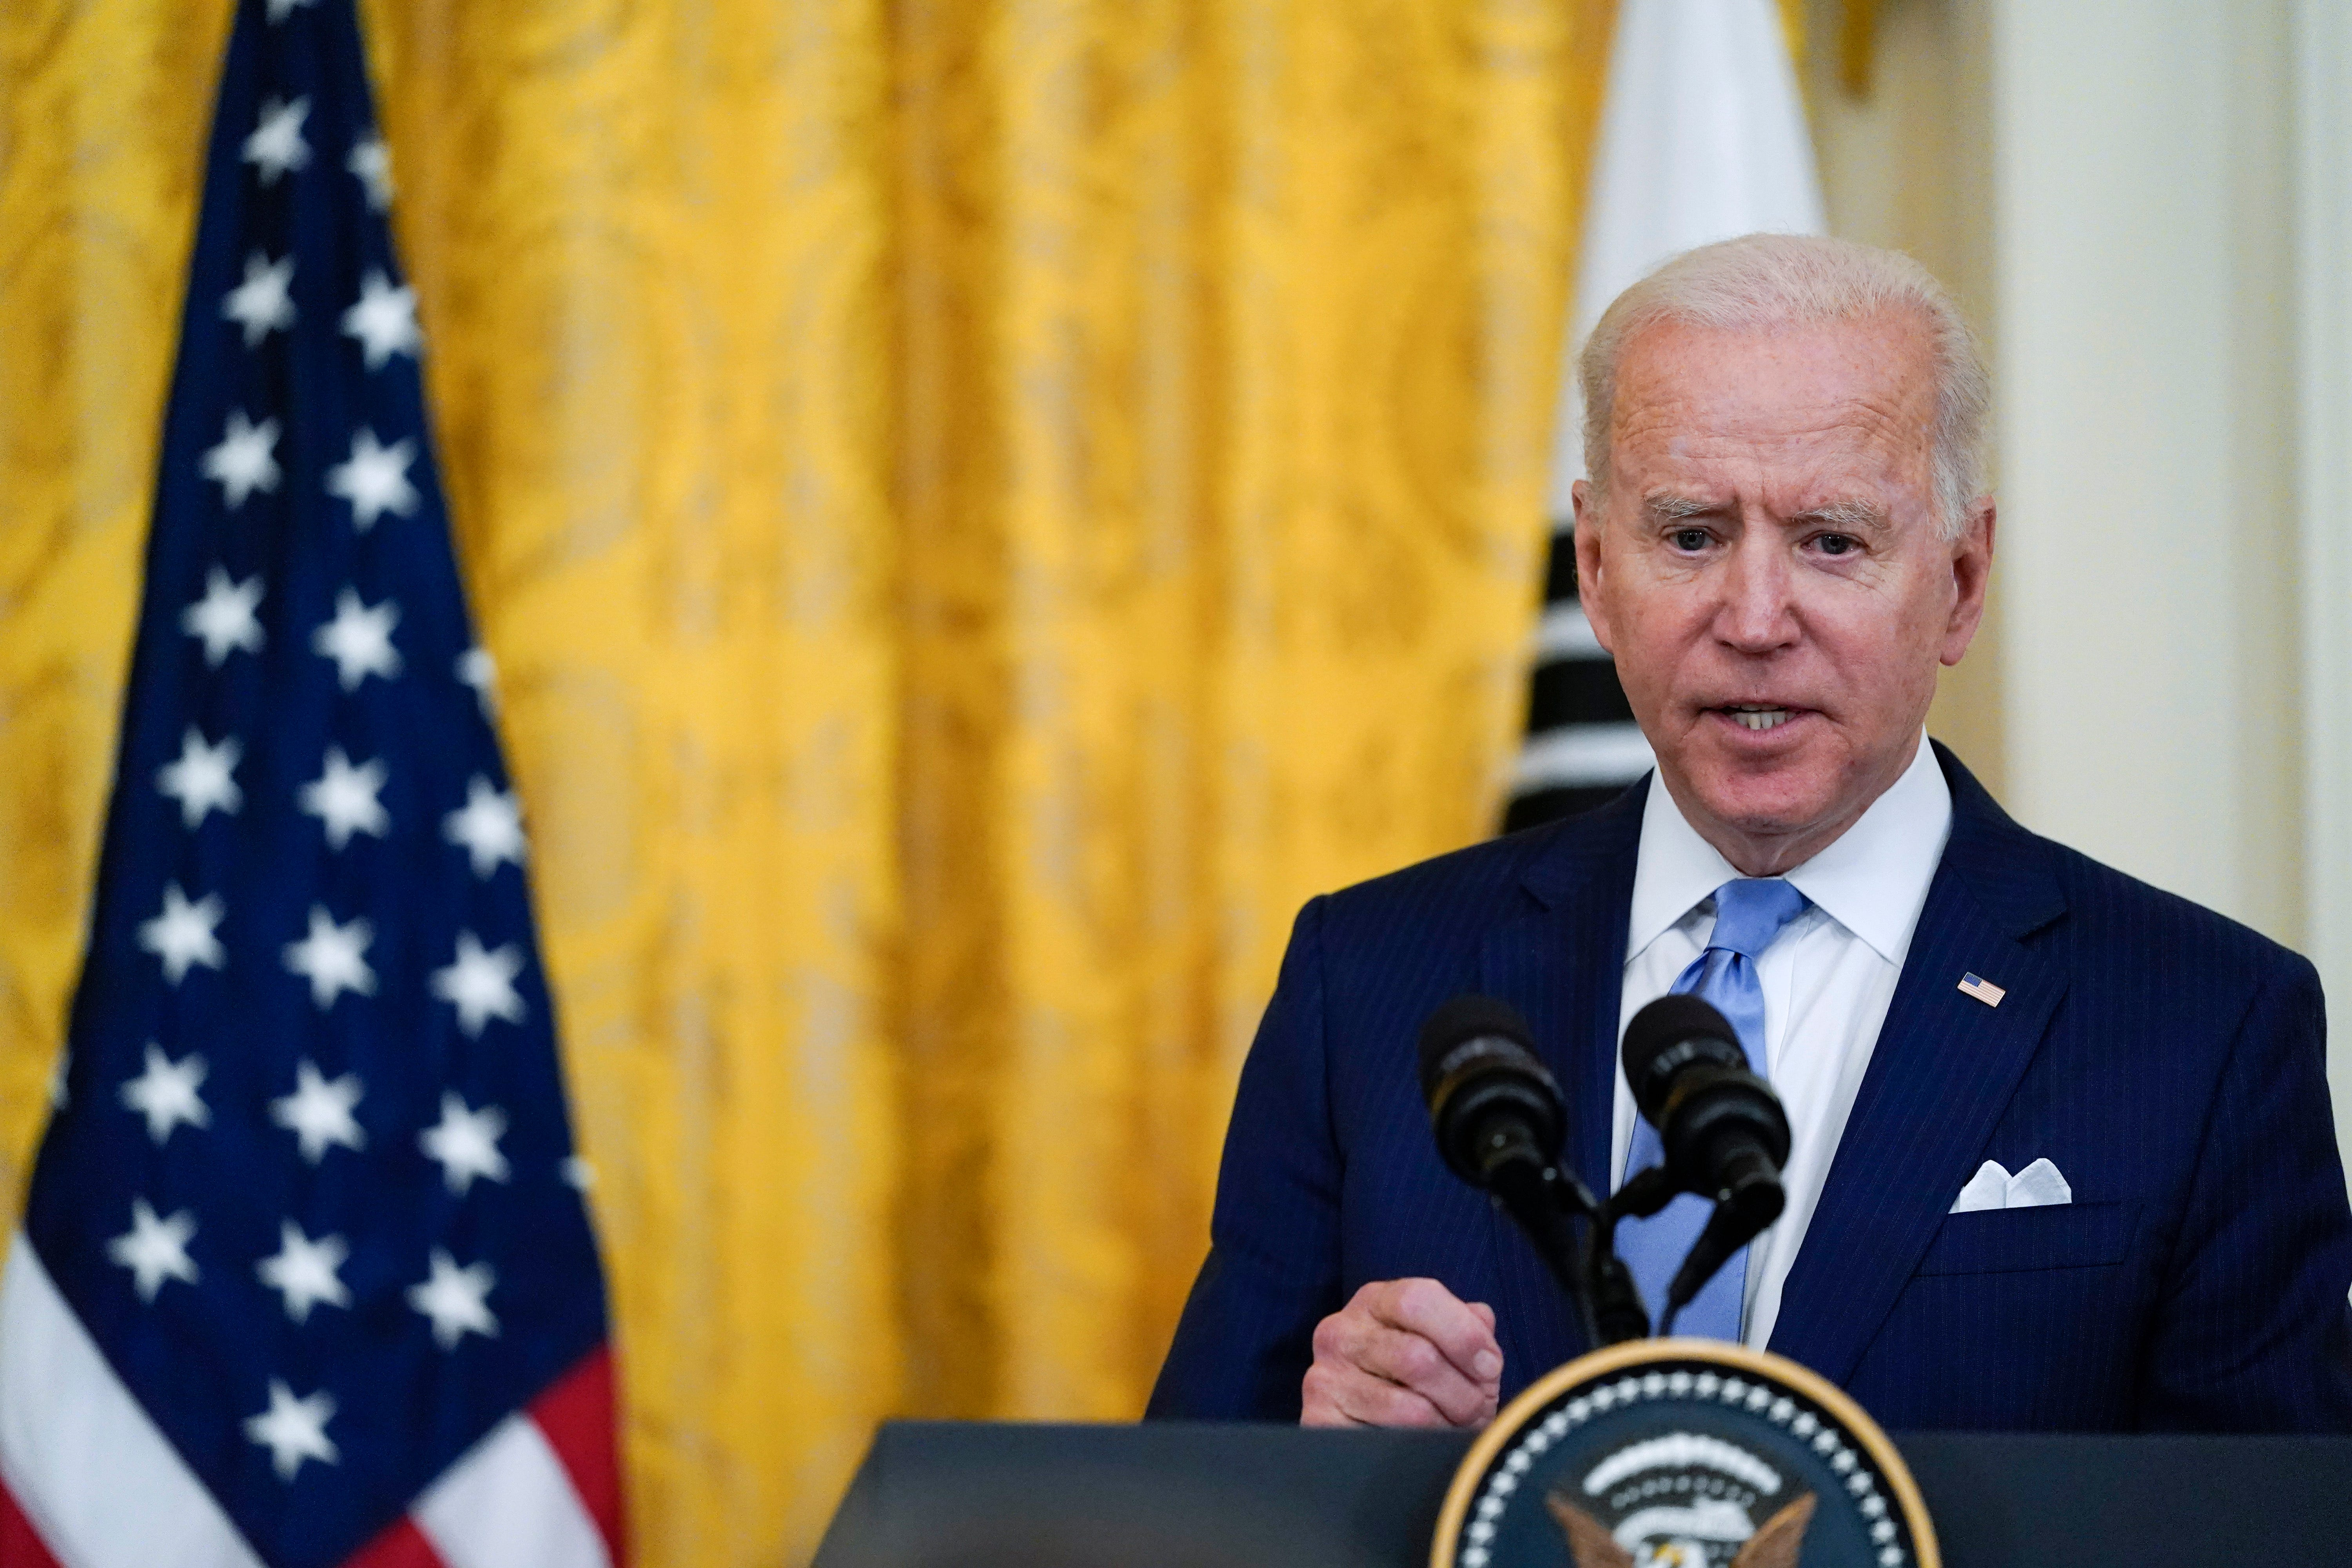 Biden won't allow Justice Dept. to seize reporters' records 2